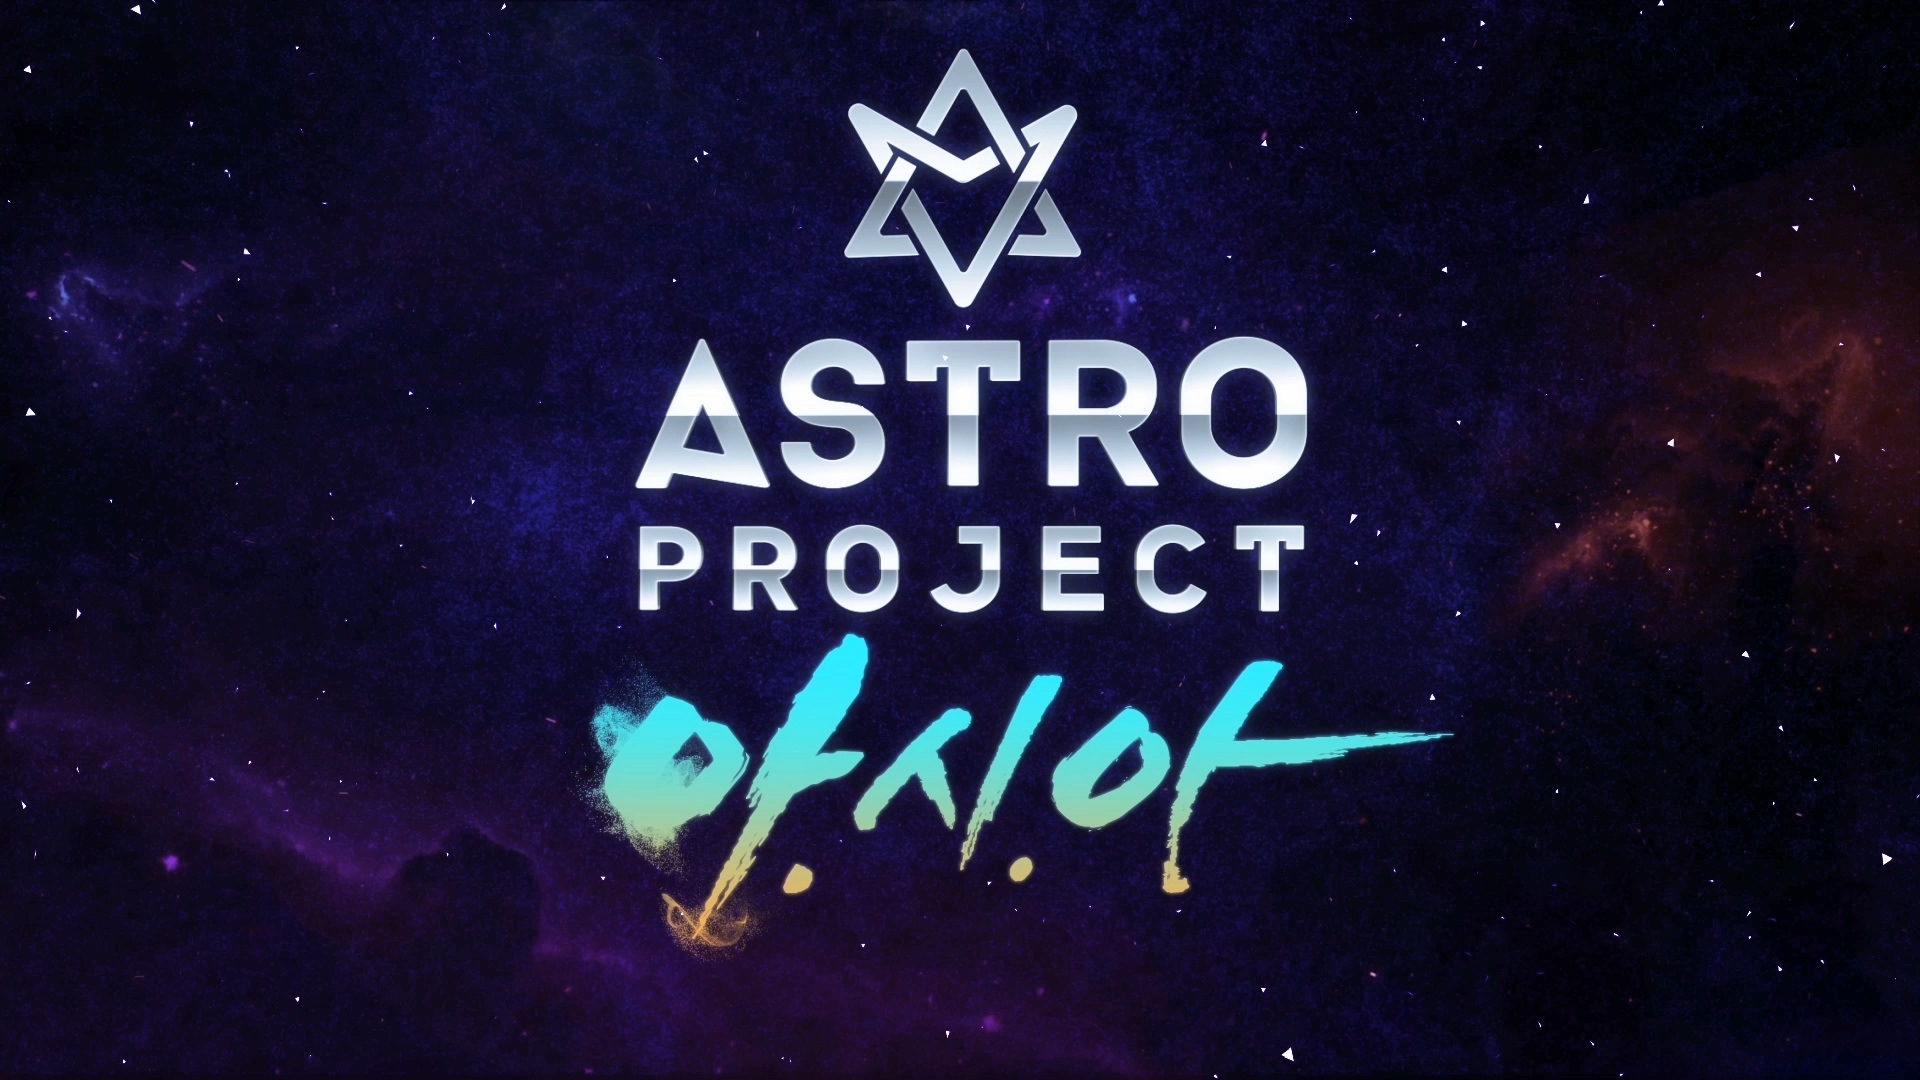 [ASTRO PROJECT] TEASER